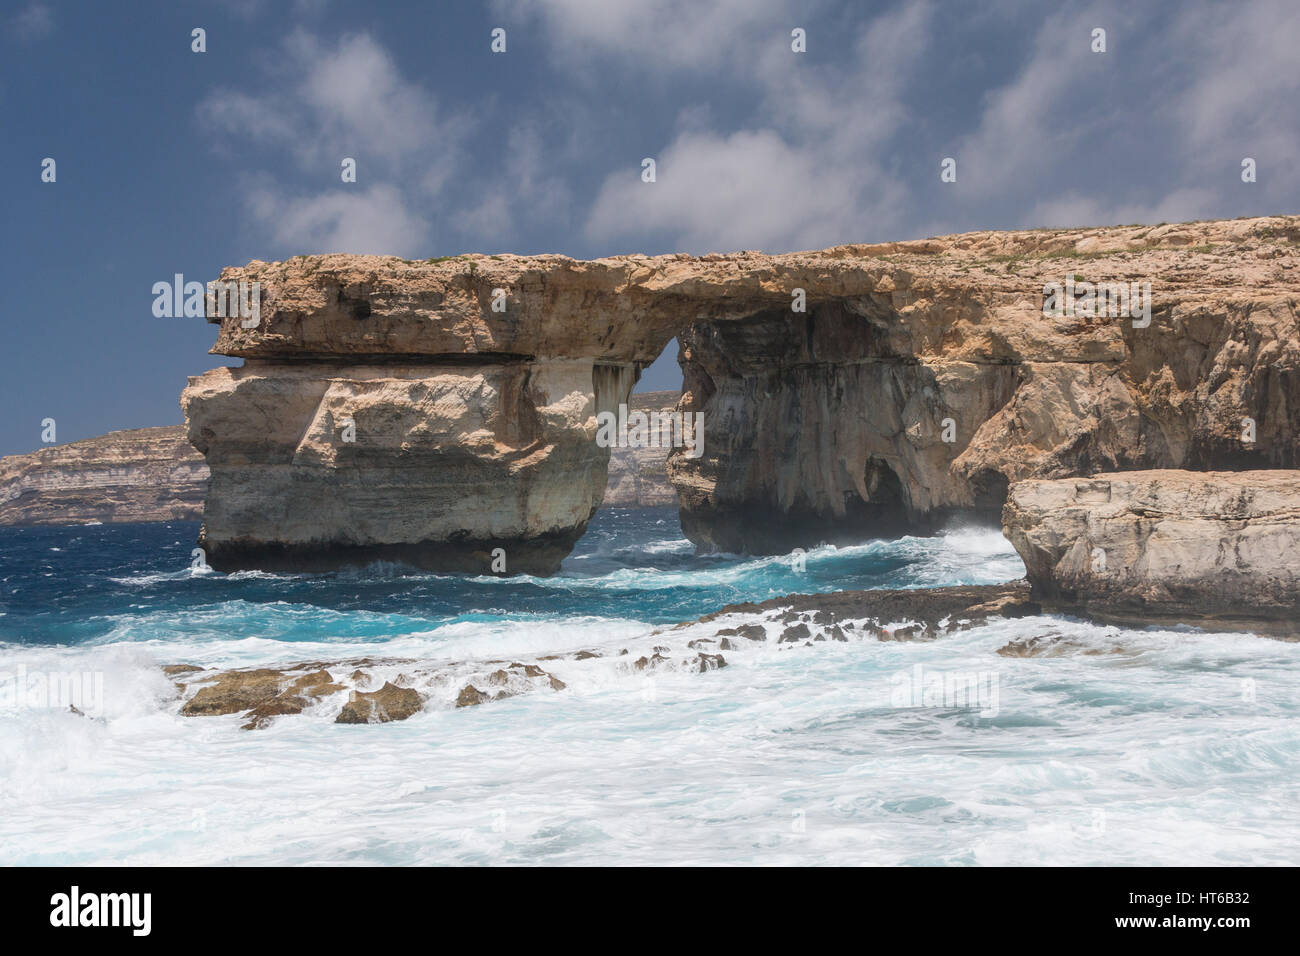 The Azure Window with crashing waves at daytime on Gozo, Malta - Stock Image